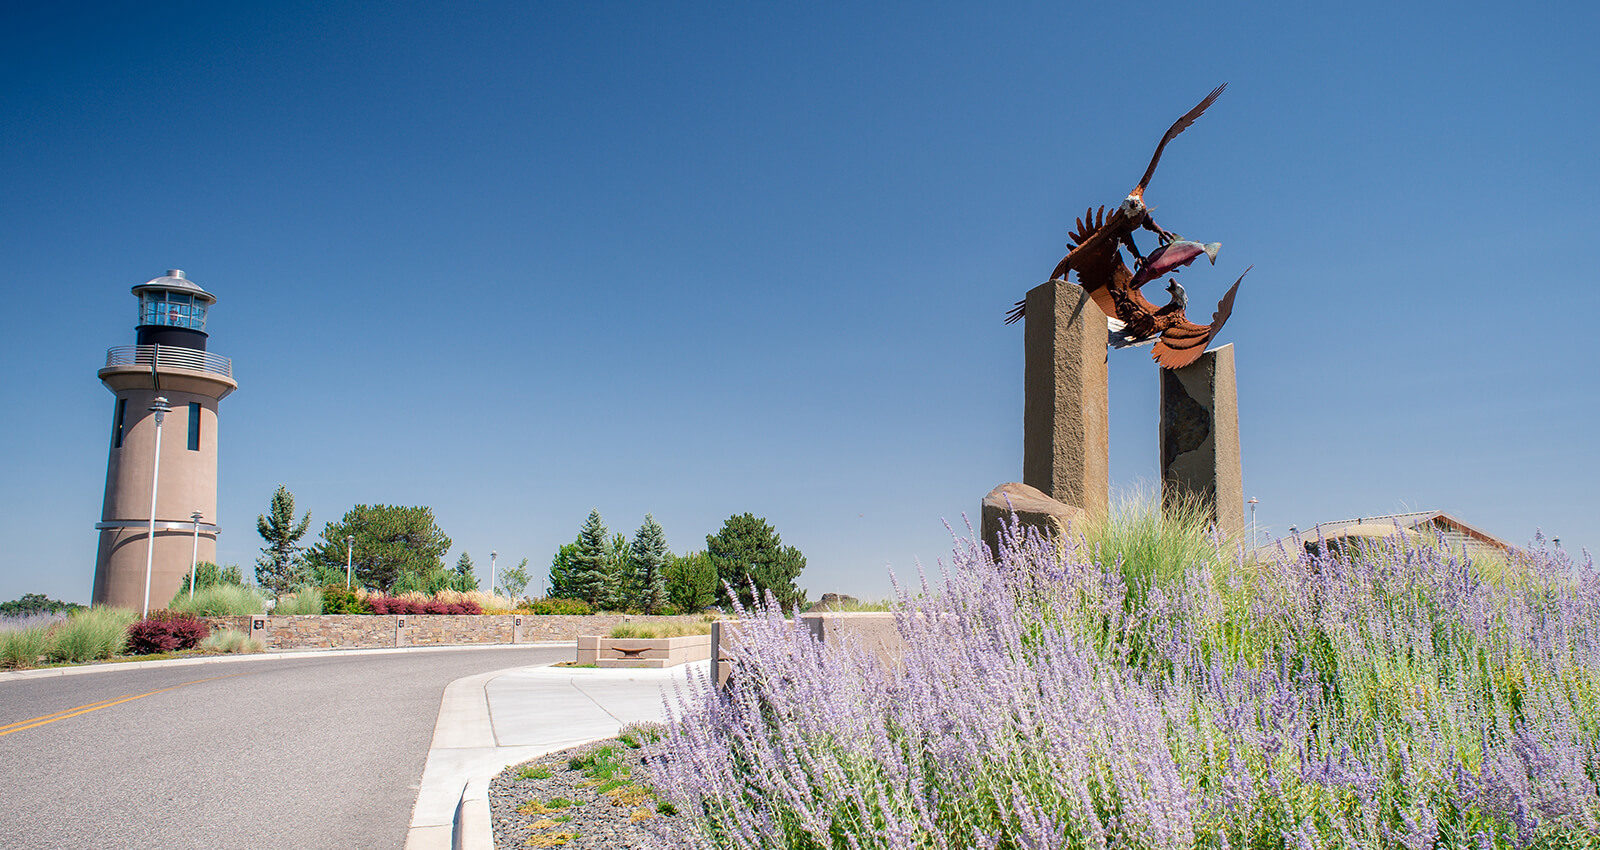 Fair Game art installation surrounded by lavender.